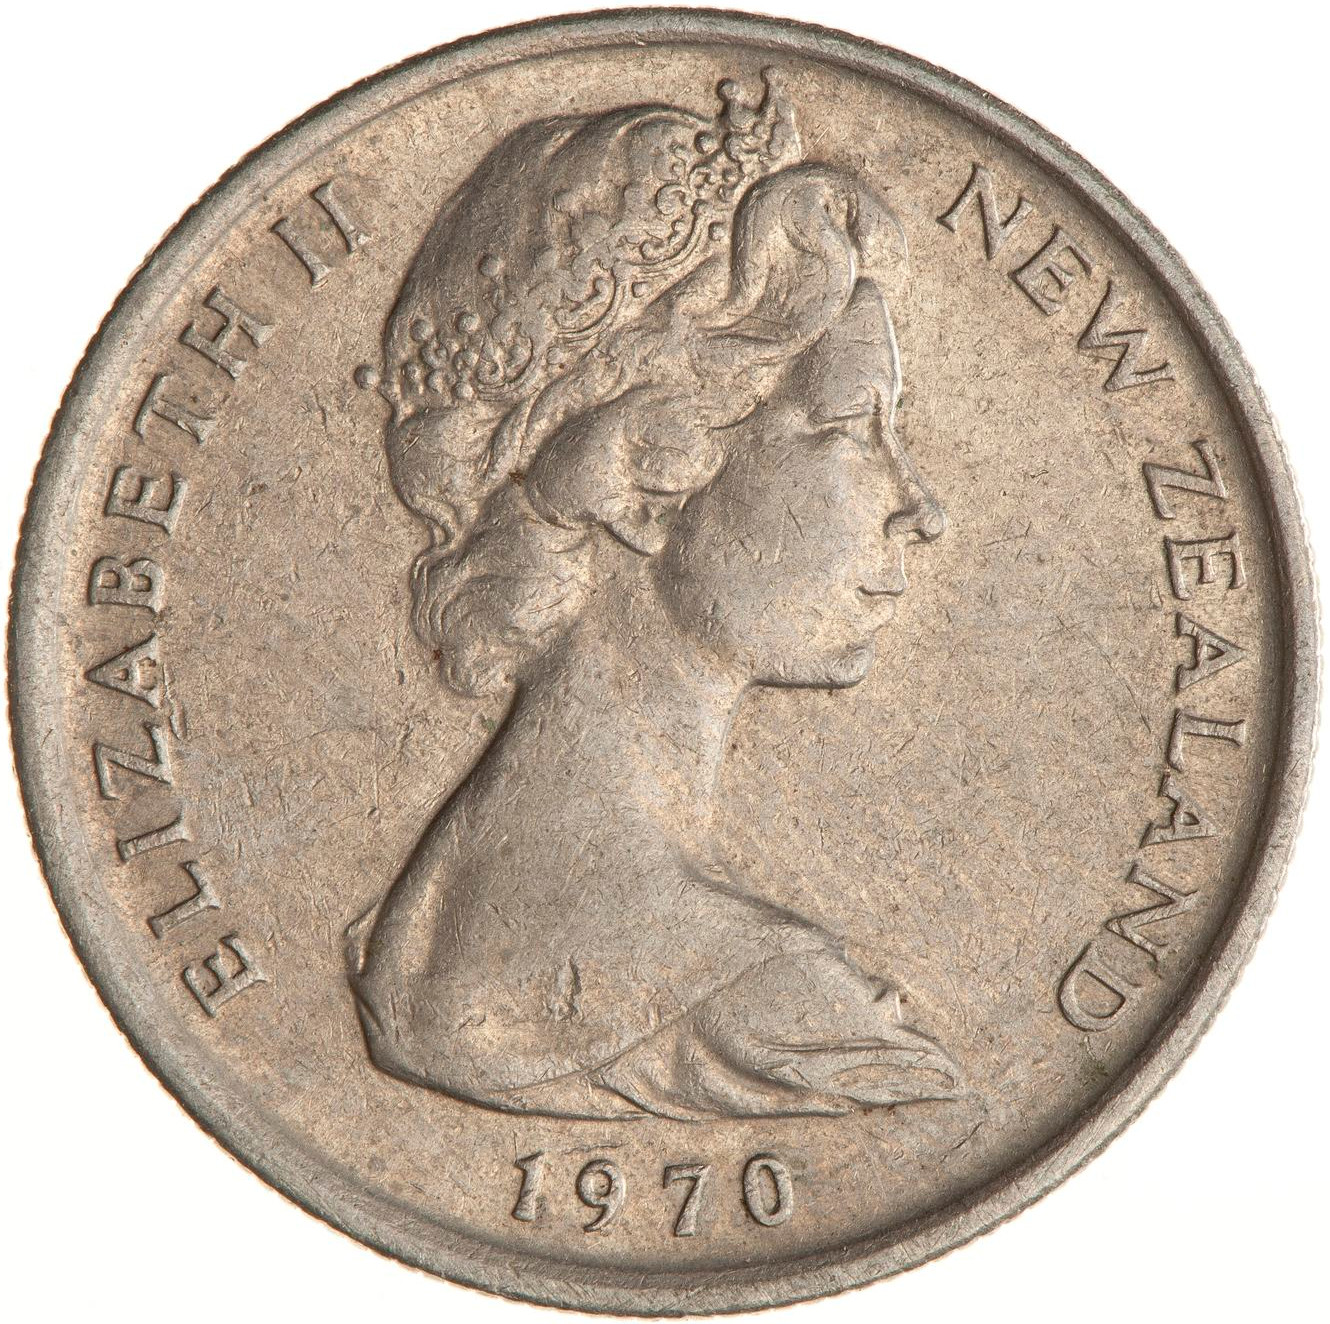 Five Cents 1970: Photo Coin - 5 Cents, New Zealand, 1970